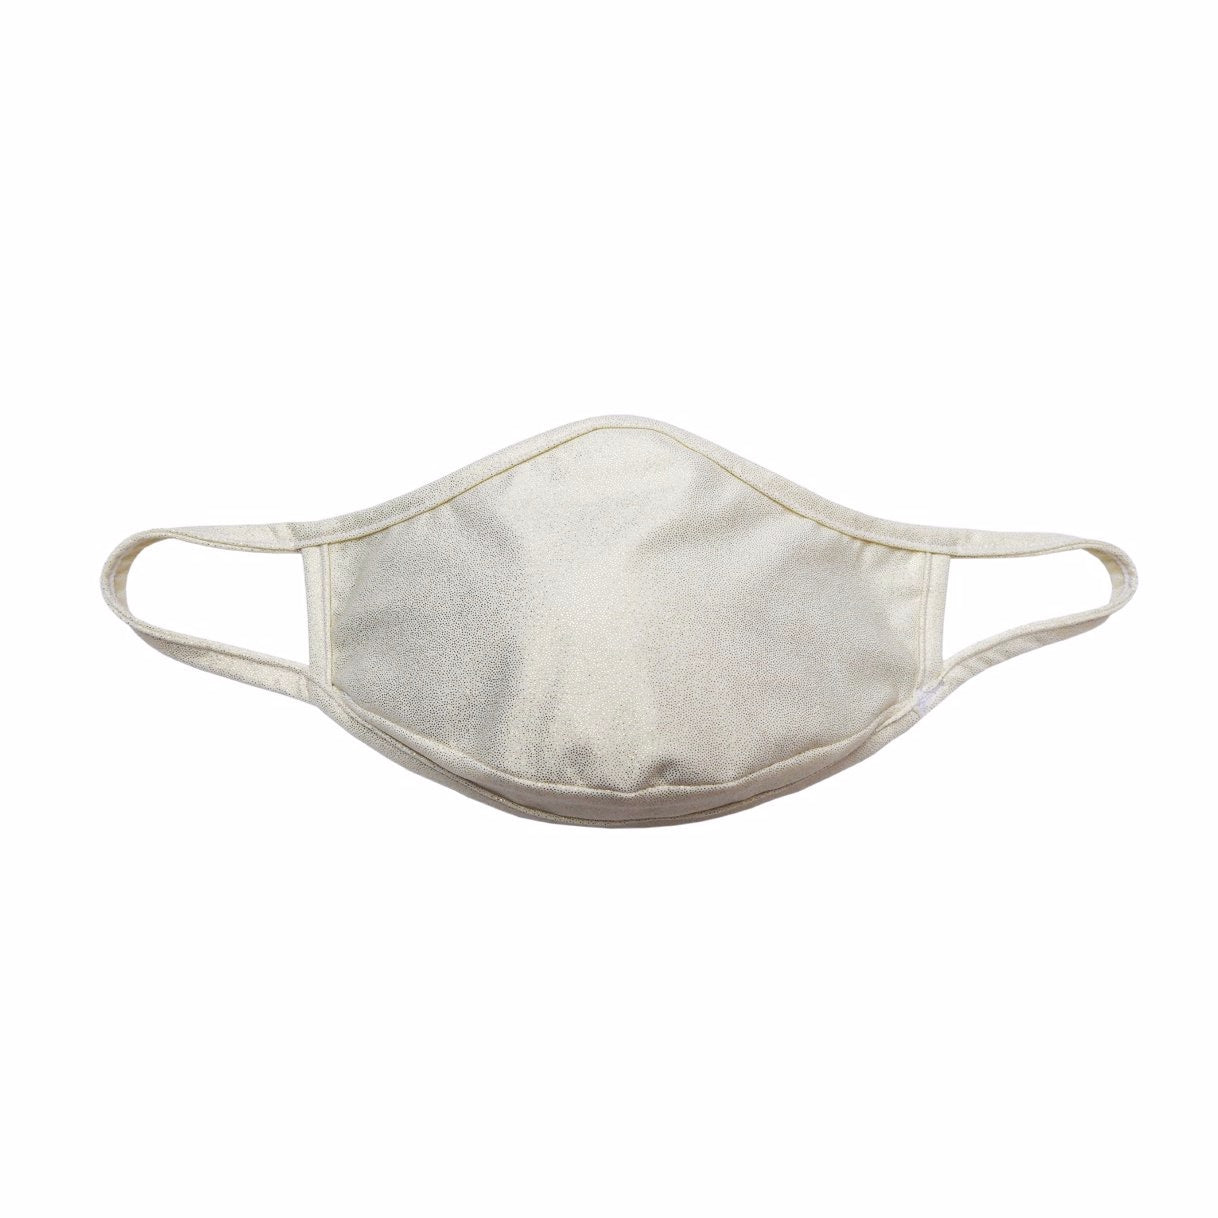 Ivory face mask with beautiful sparkle to it. Great for wedding face mask, bride face mask, or women face masks. Masquini face mask are unisex and an be worn by women or men. OSFM. Sold by SDTradiang Co.